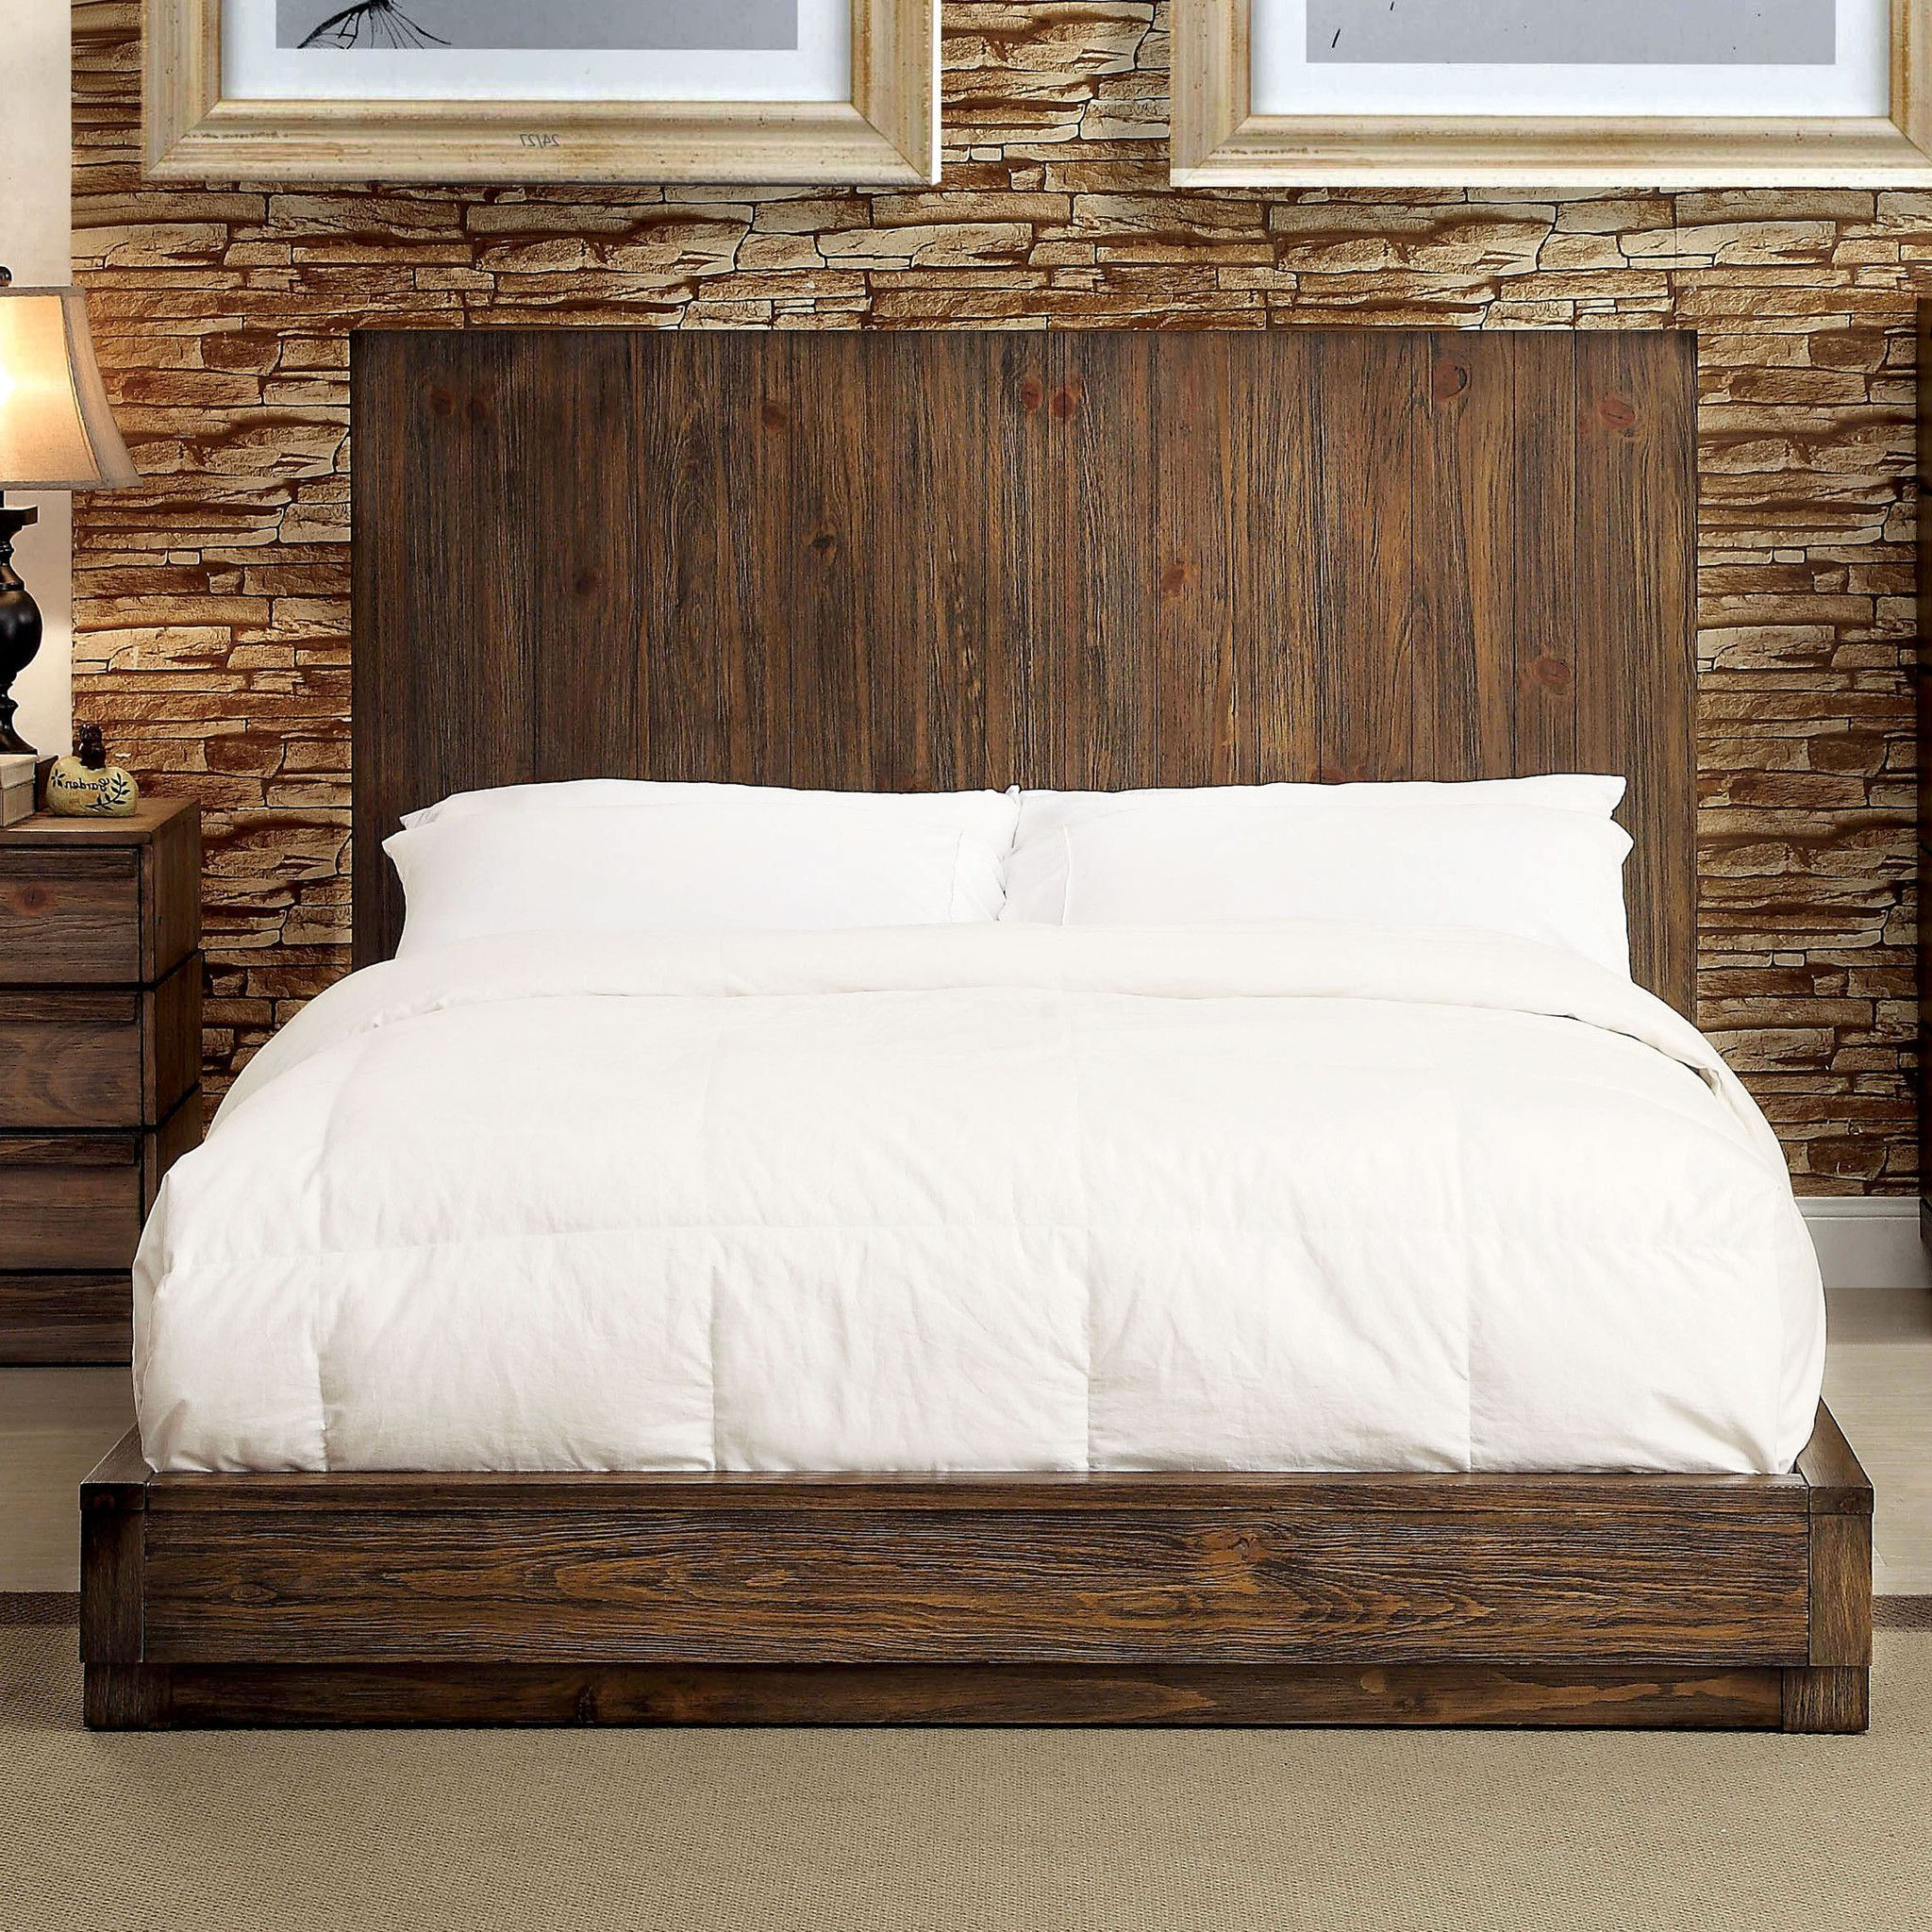 Transitional Style Low profile bed Distressed wood